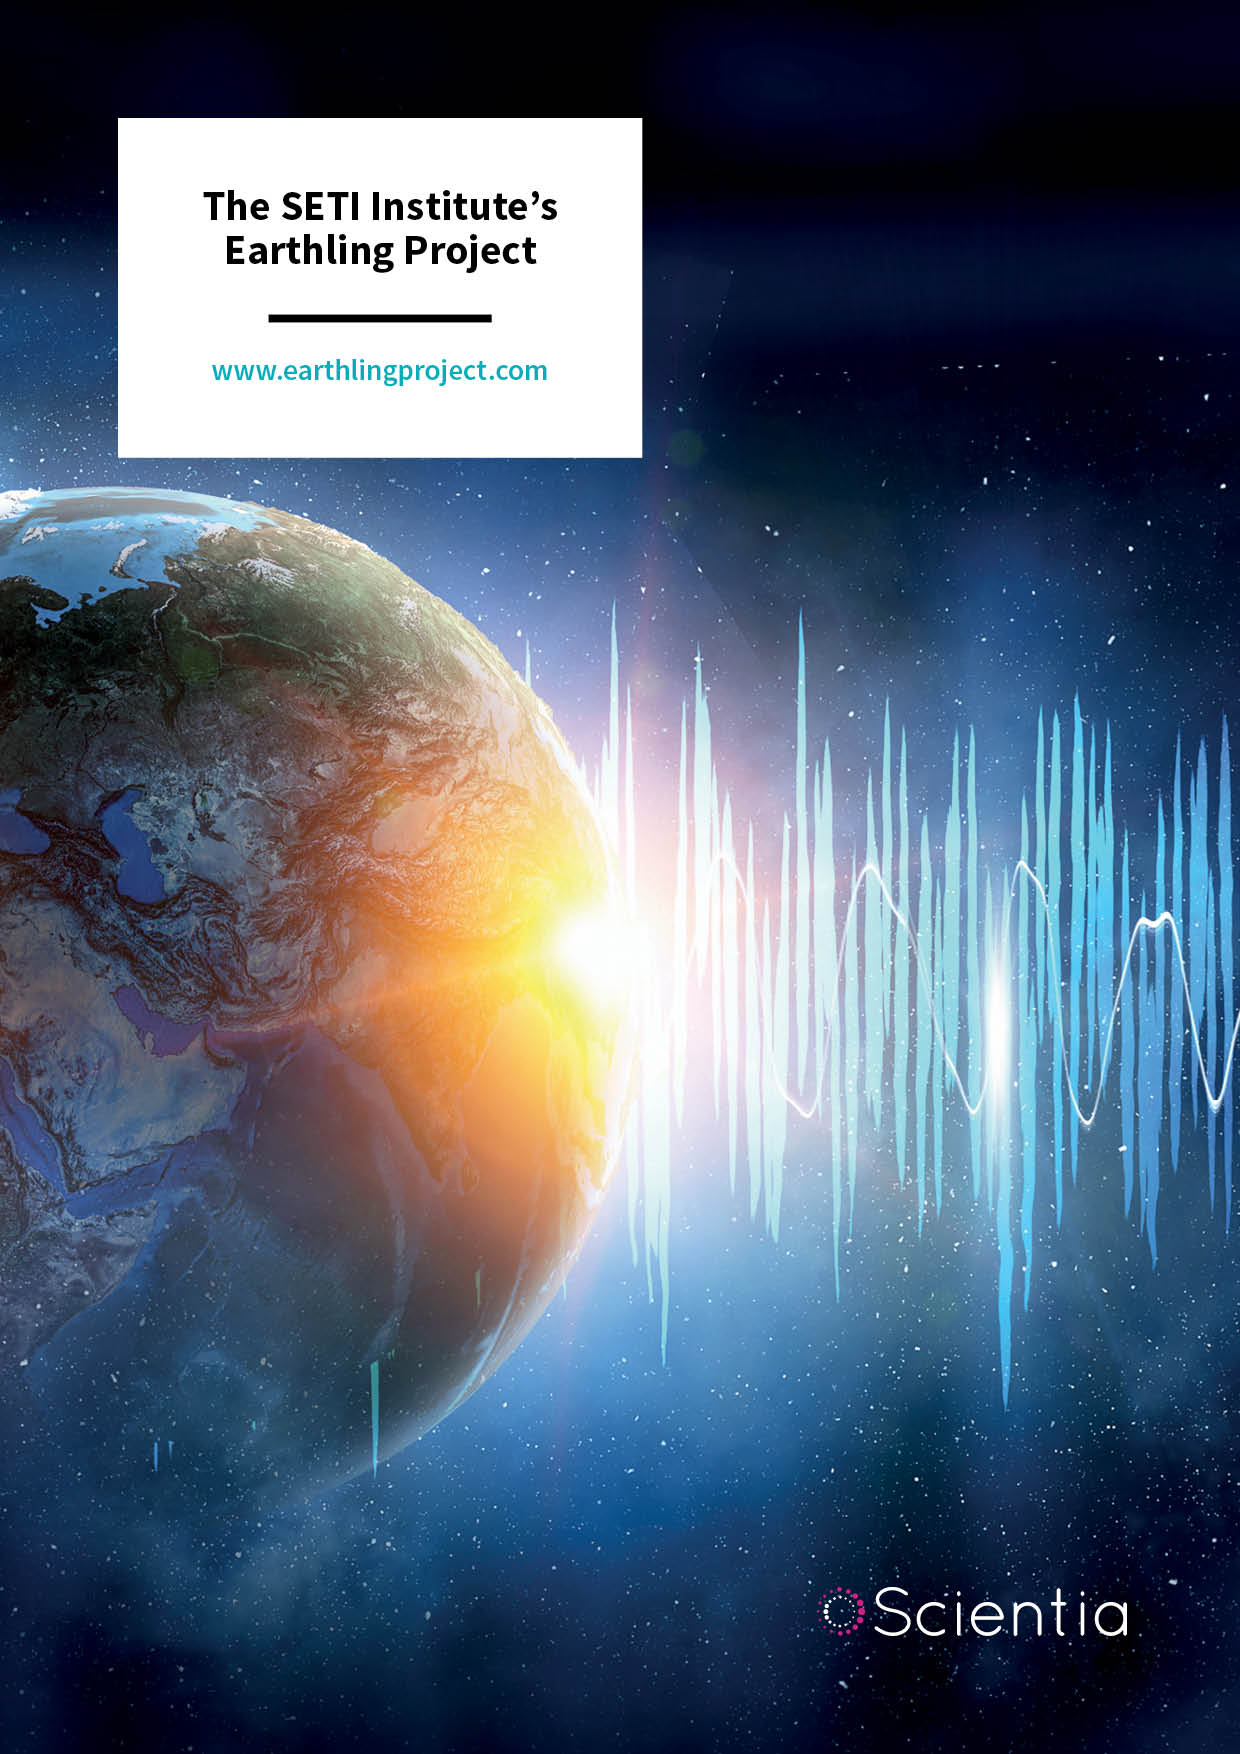 The SETI Institute's Earthling Project